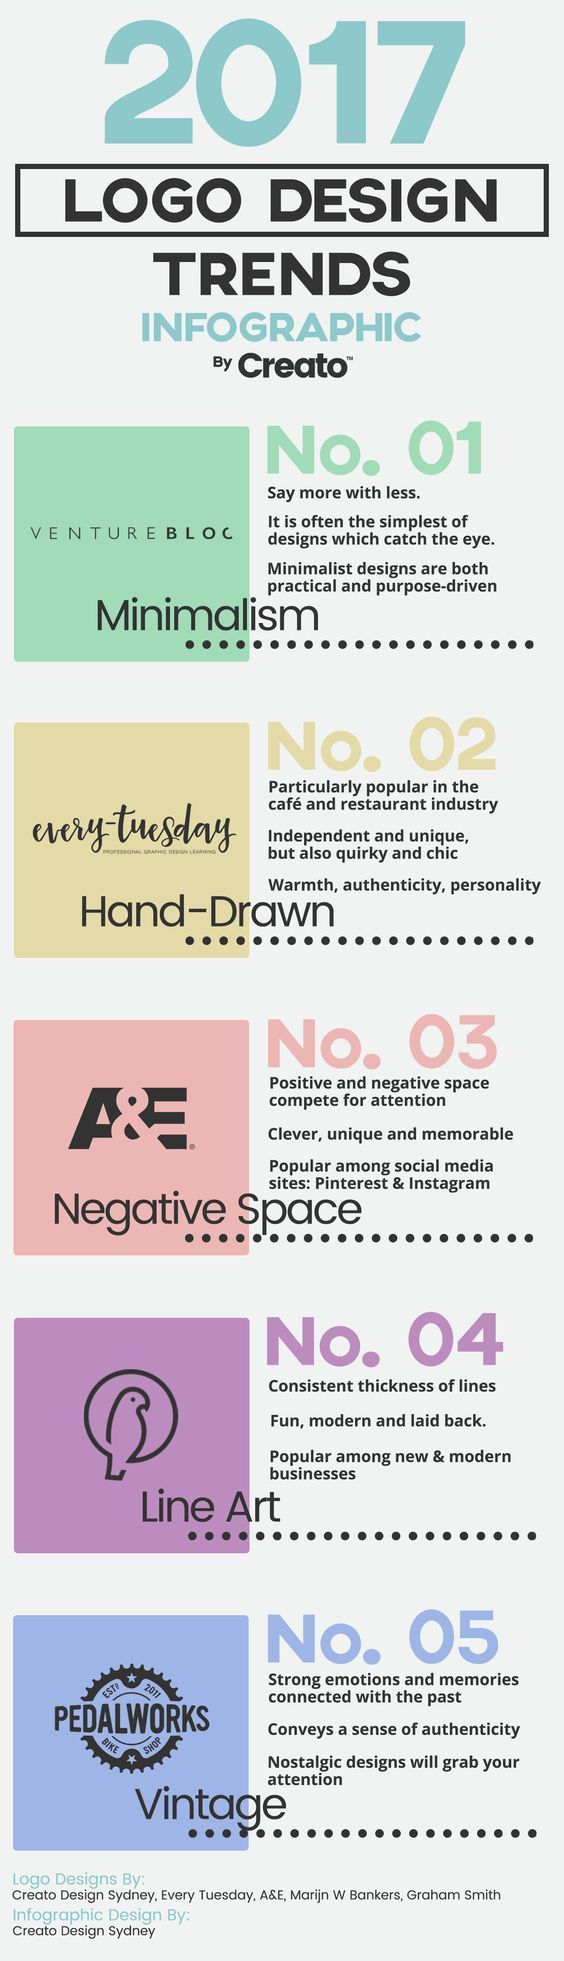 Current trends in the web design industry for designing logos.